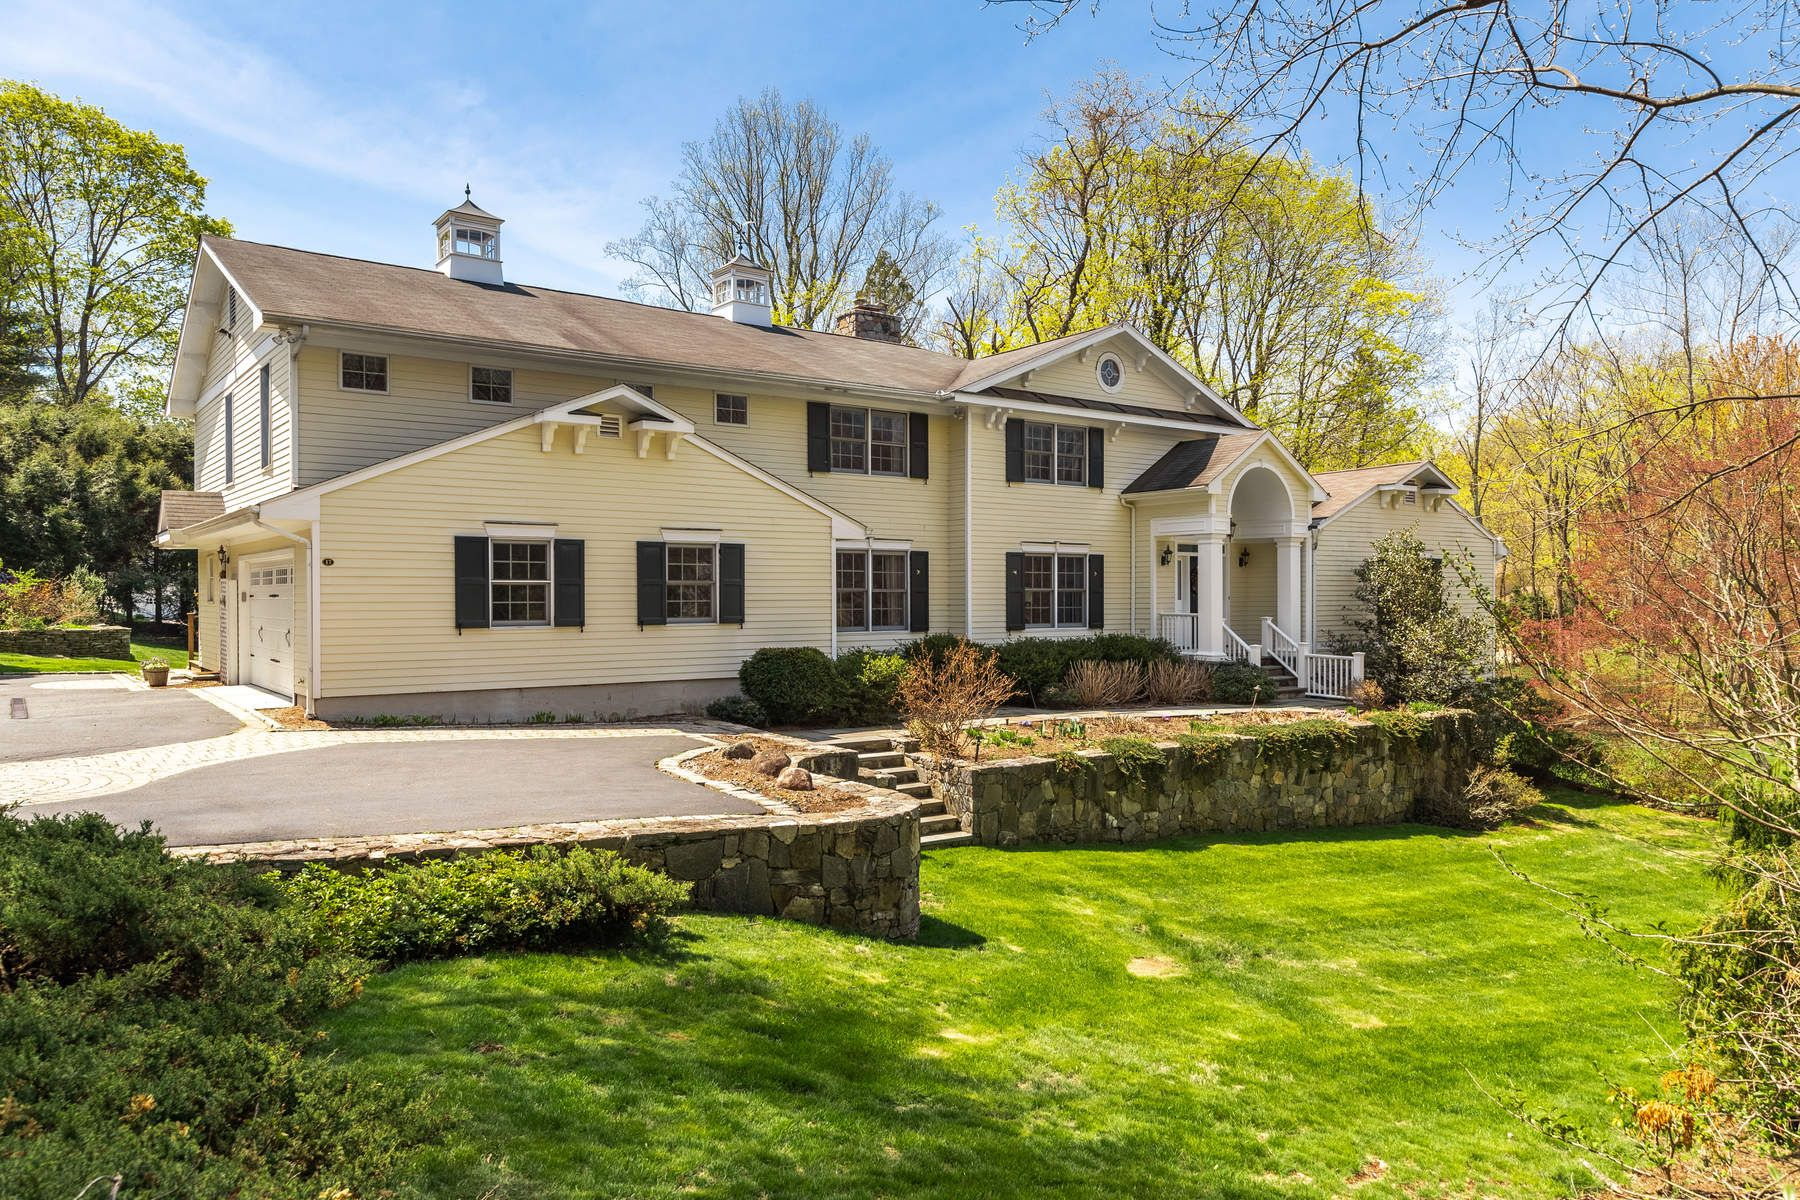 Single Family Home for Sale at 17 Rustic View Road 17 Rustic View Road Greenwich, Connecticut 06830 United States